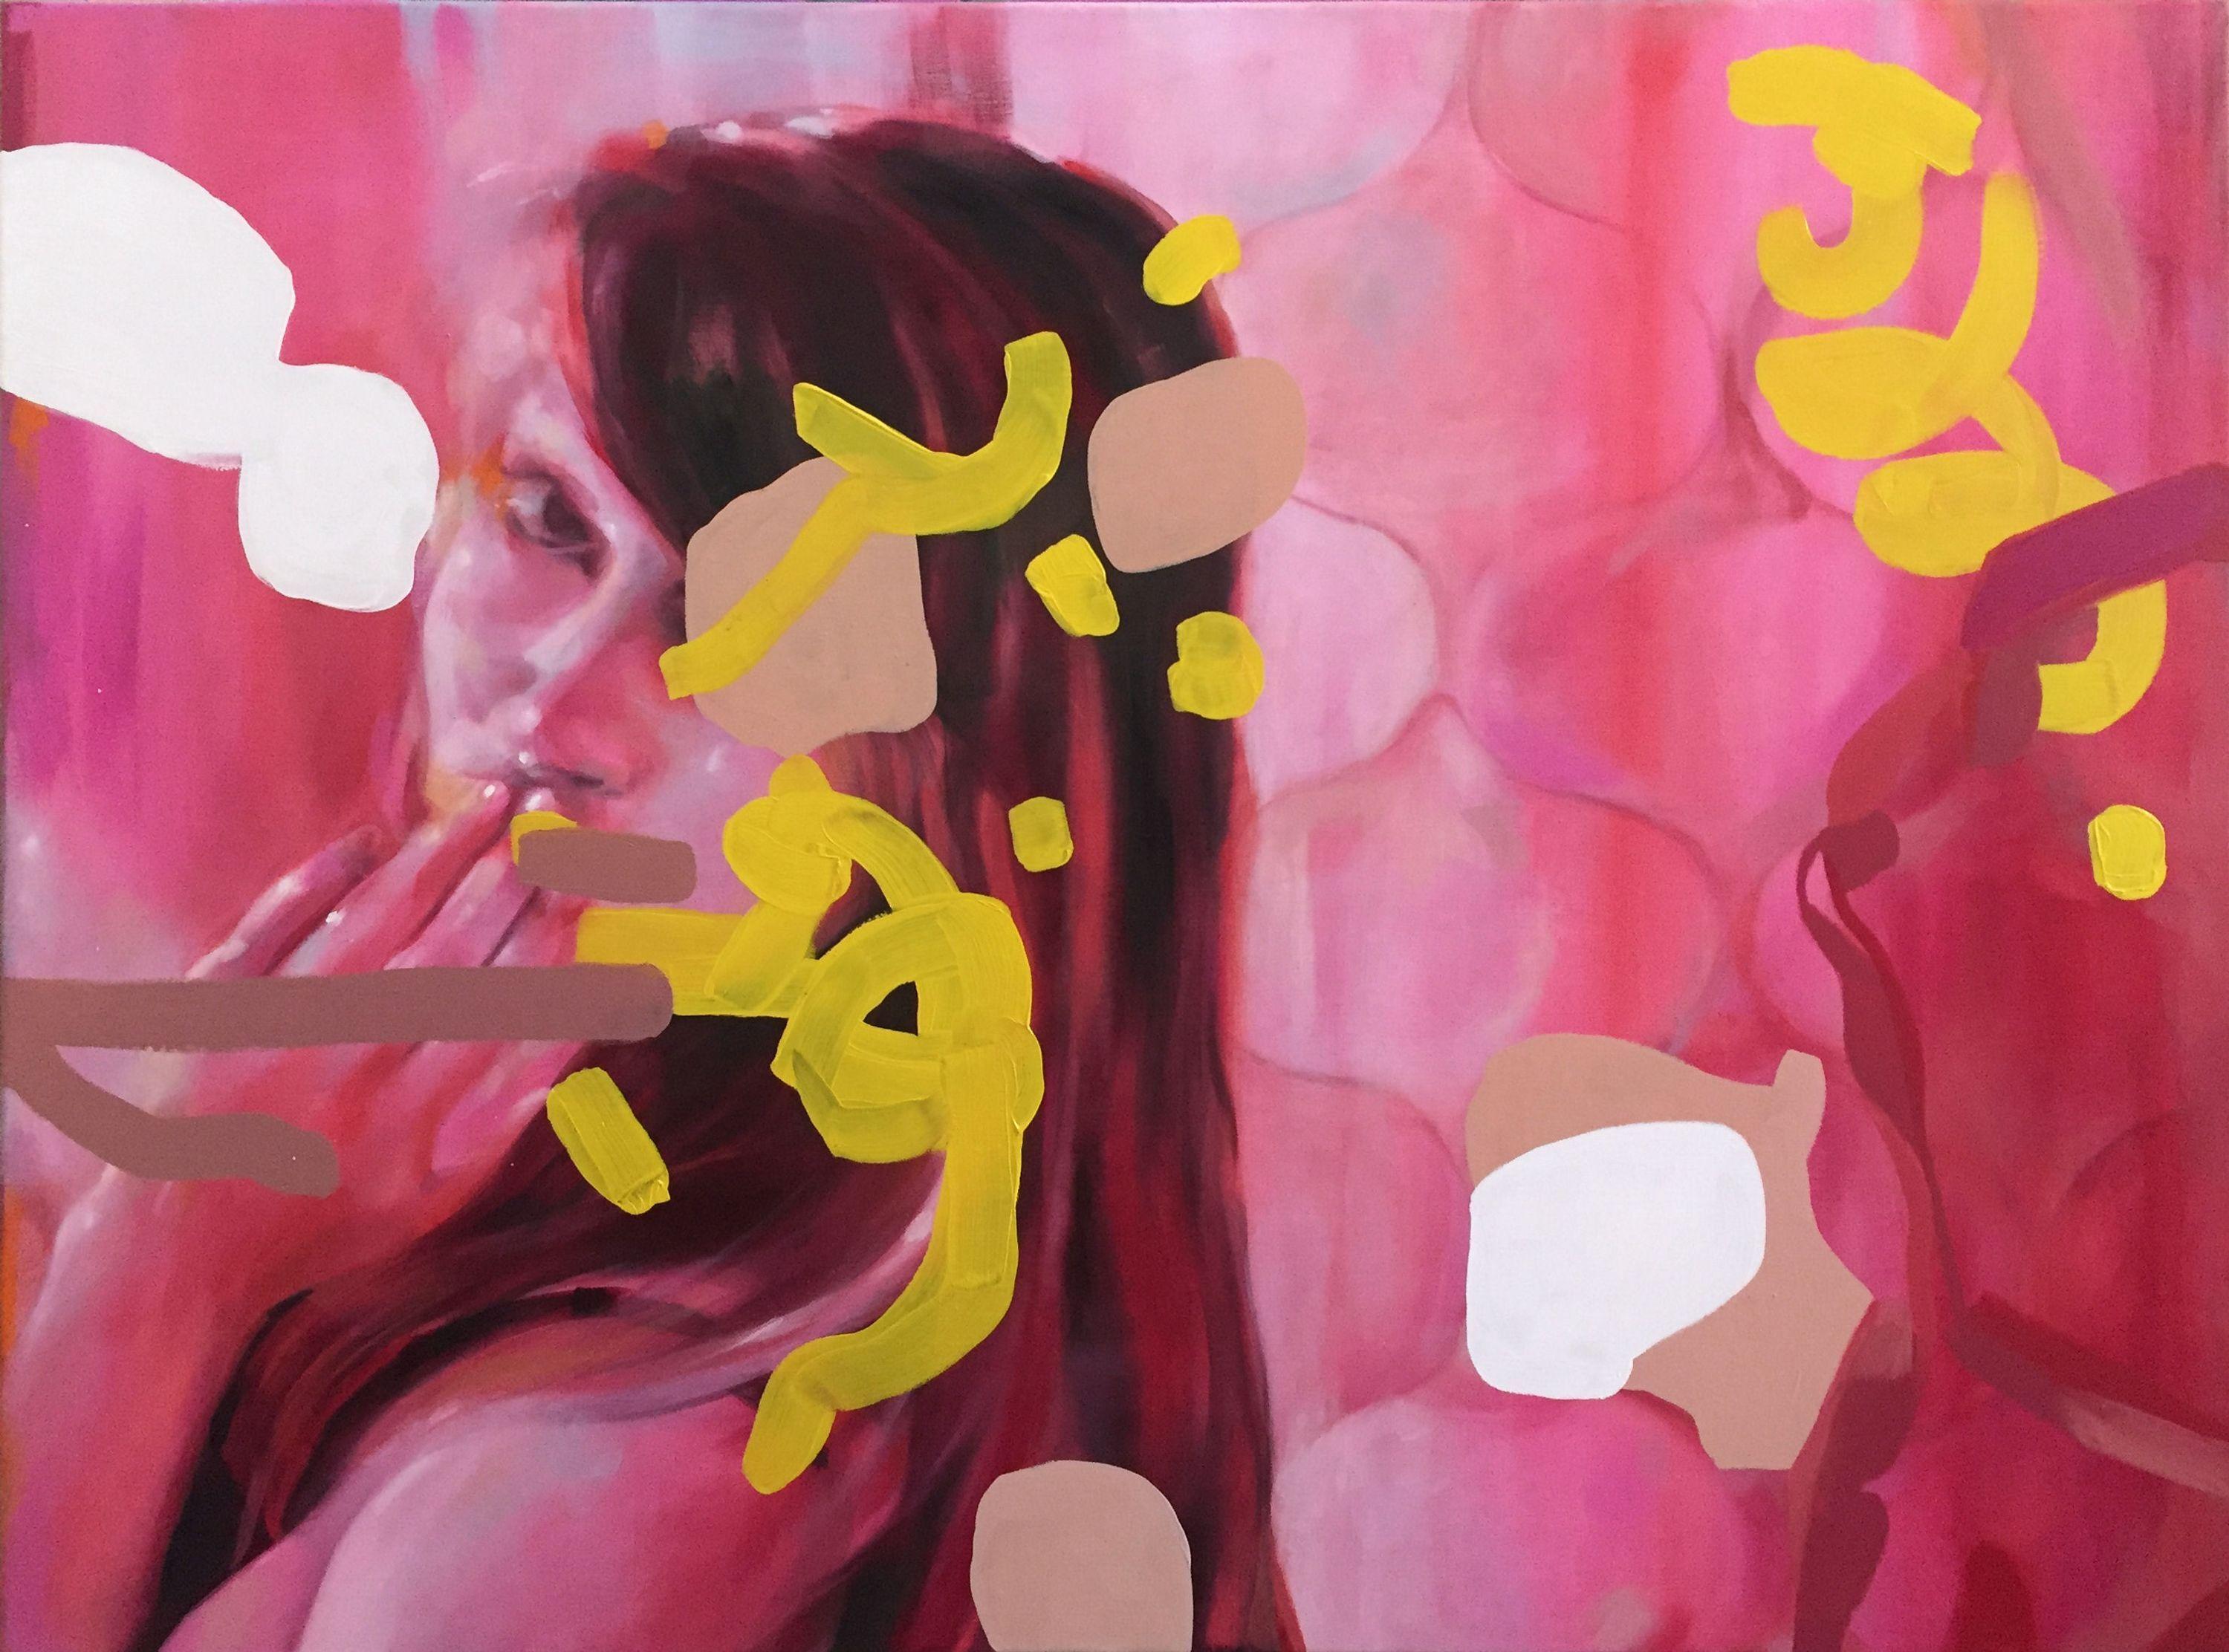 Le baiser by Nathalie Pirotte, Husk Gallery